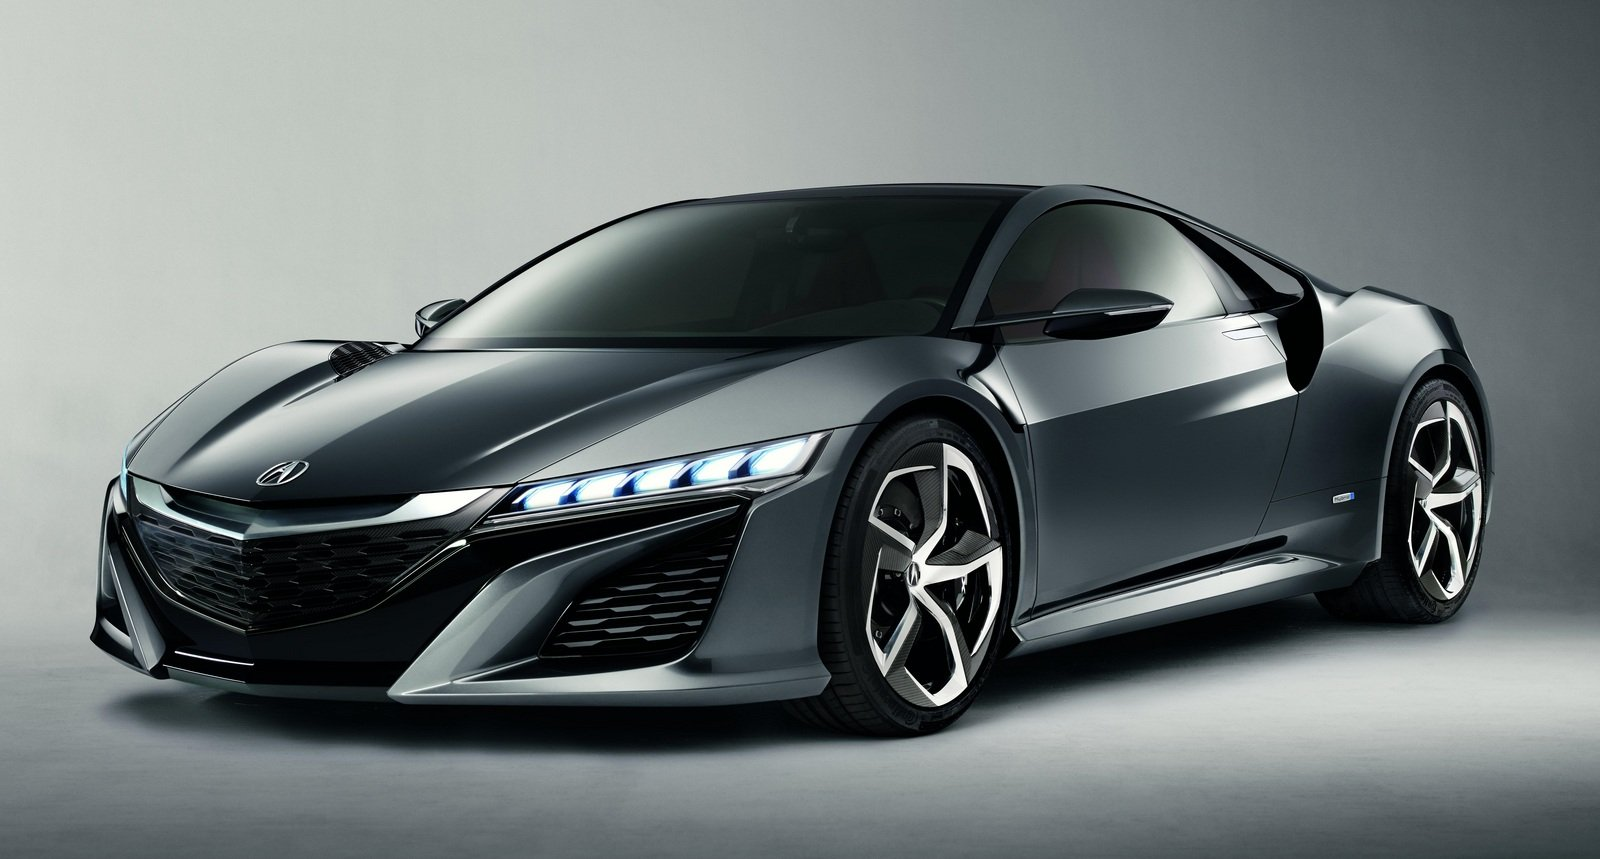 2016 acura nsx picture 510560 car review top speed. Black Bedroom Furniture Sets. Home Design Ideas